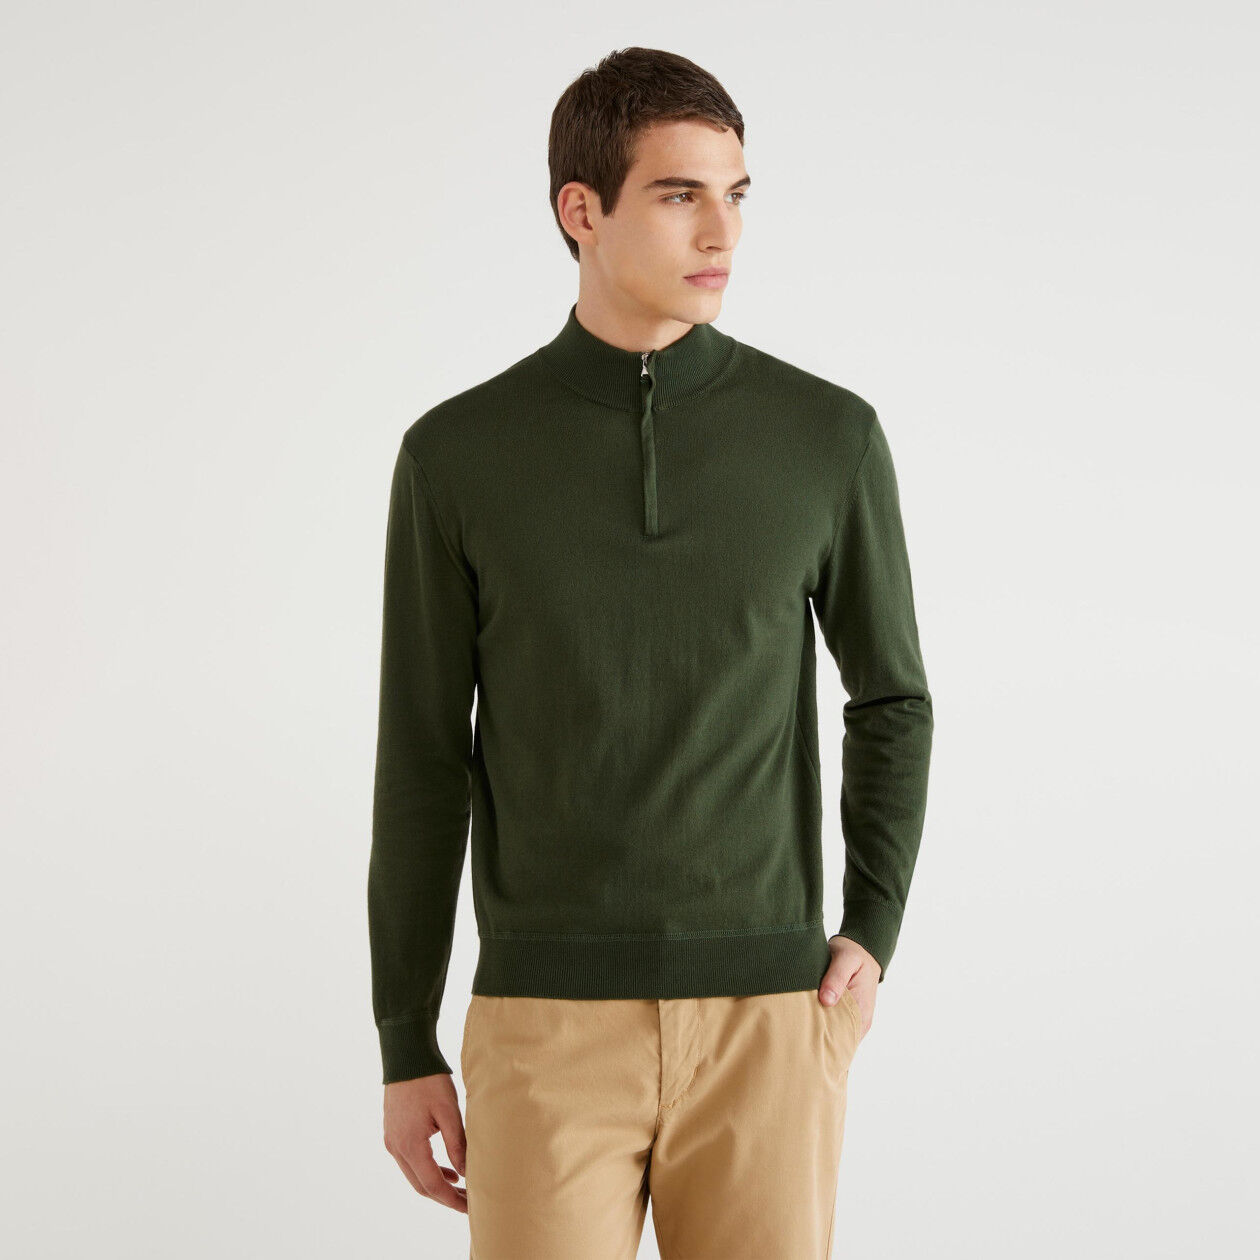 Turtleneck sweater with zipper